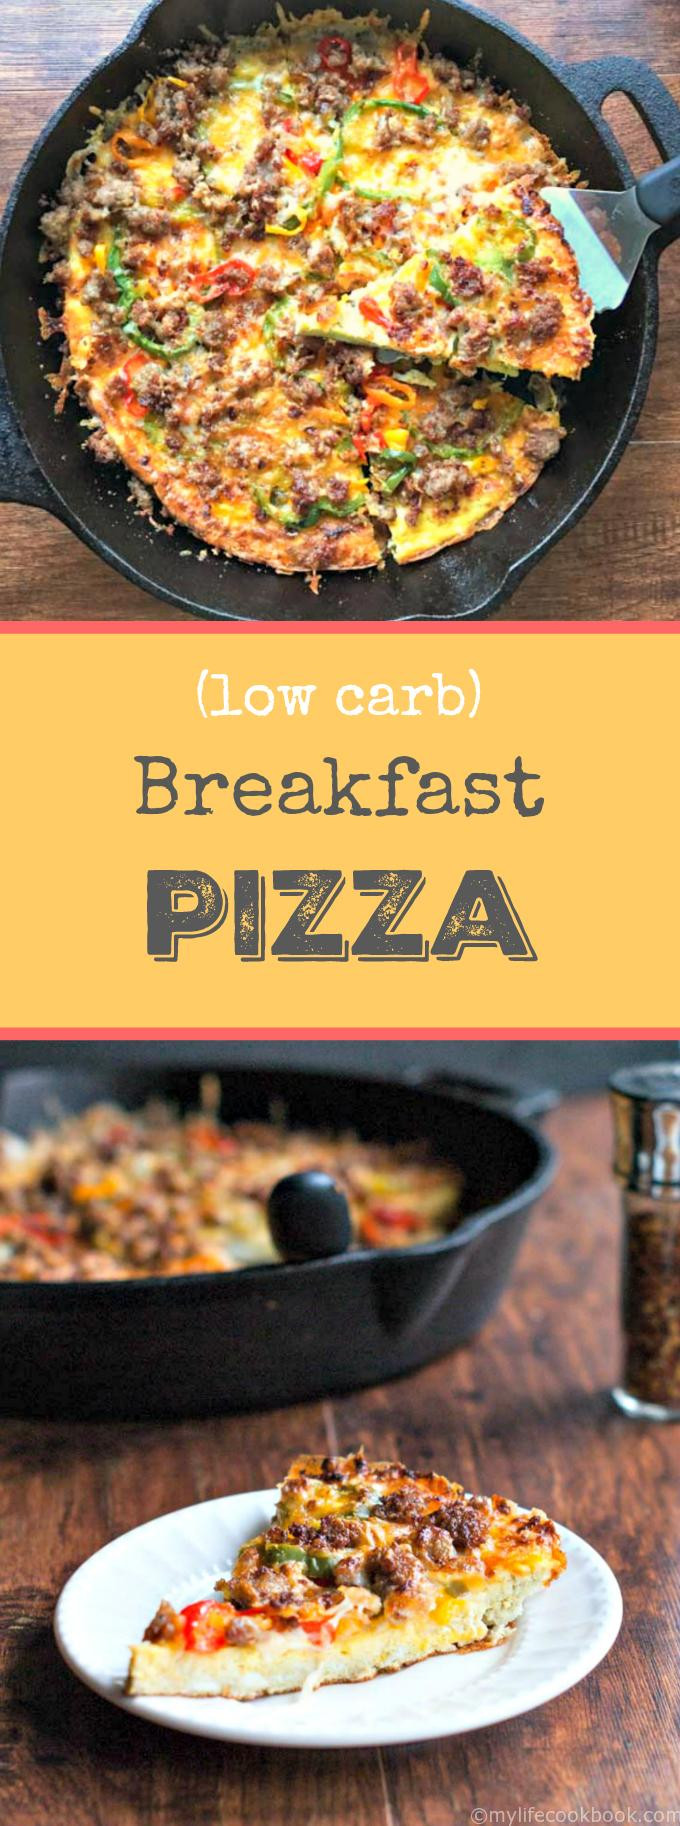 Low Carb Brunch Recipes  Low Carb Breakfast Pizza